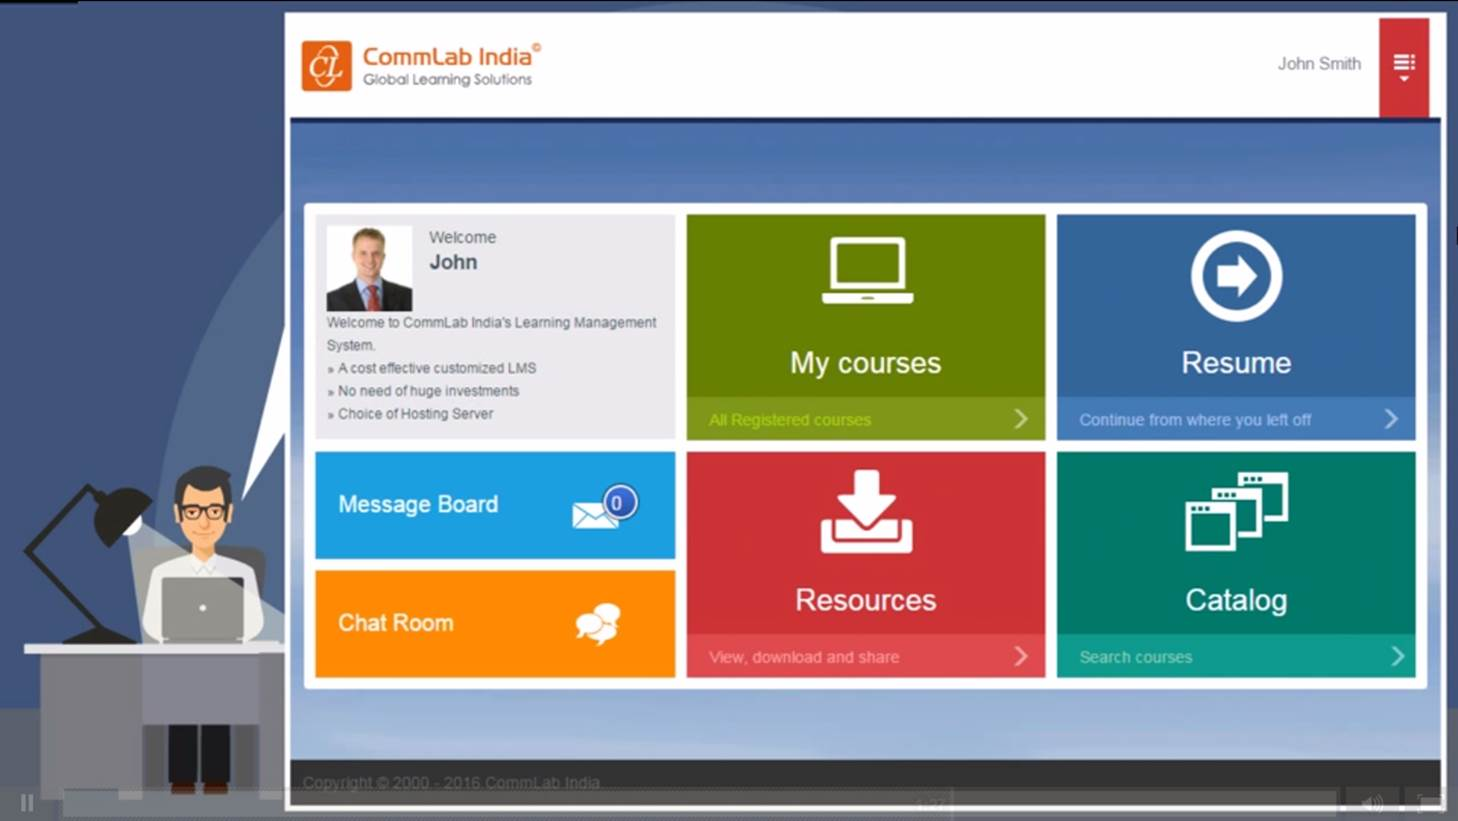 Using Moodle LMS for anytime and any device access